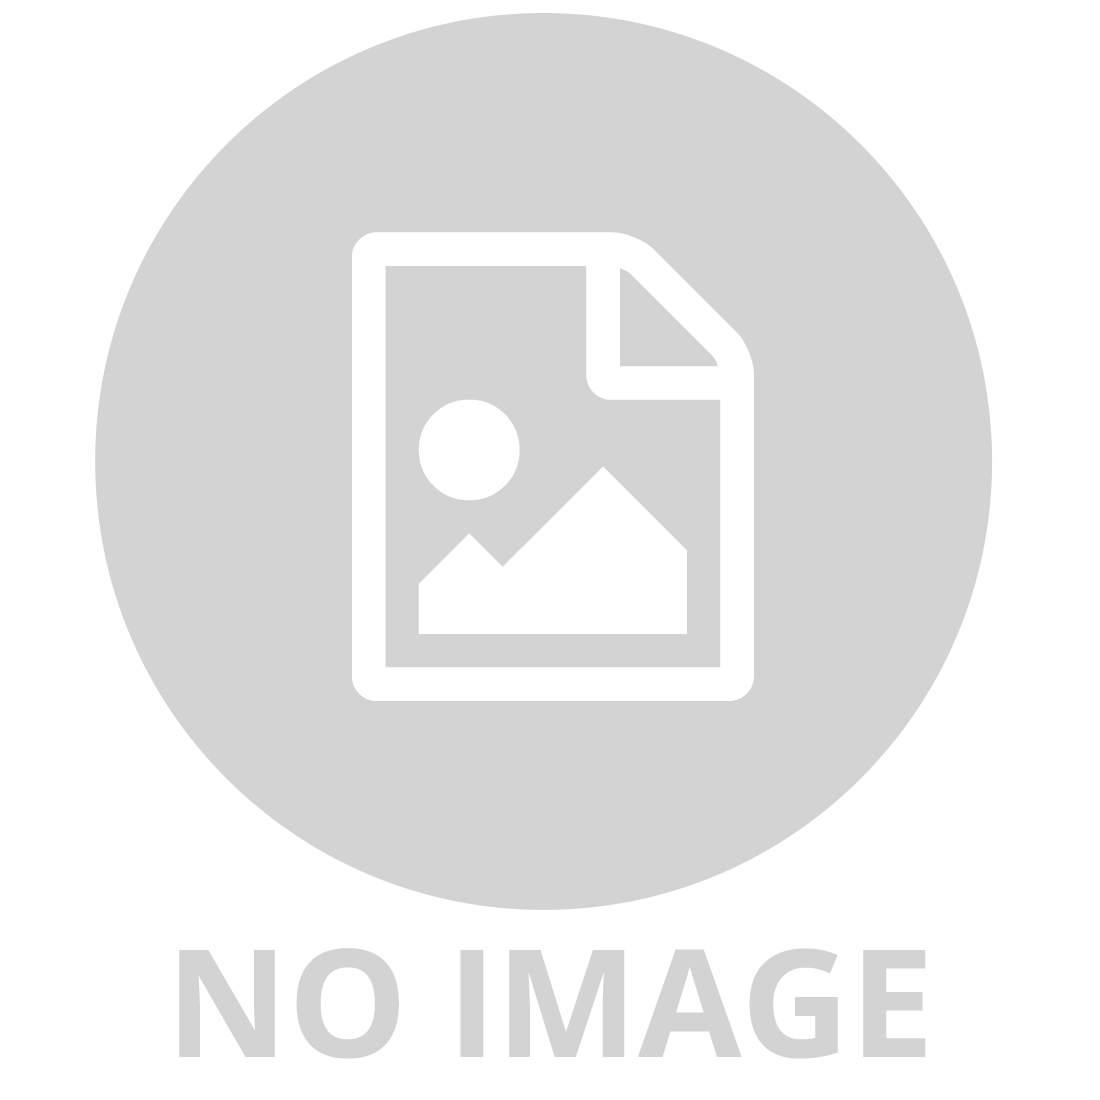 KINDI KIDS KINDI FUN DELIVERY SCOOTER S2